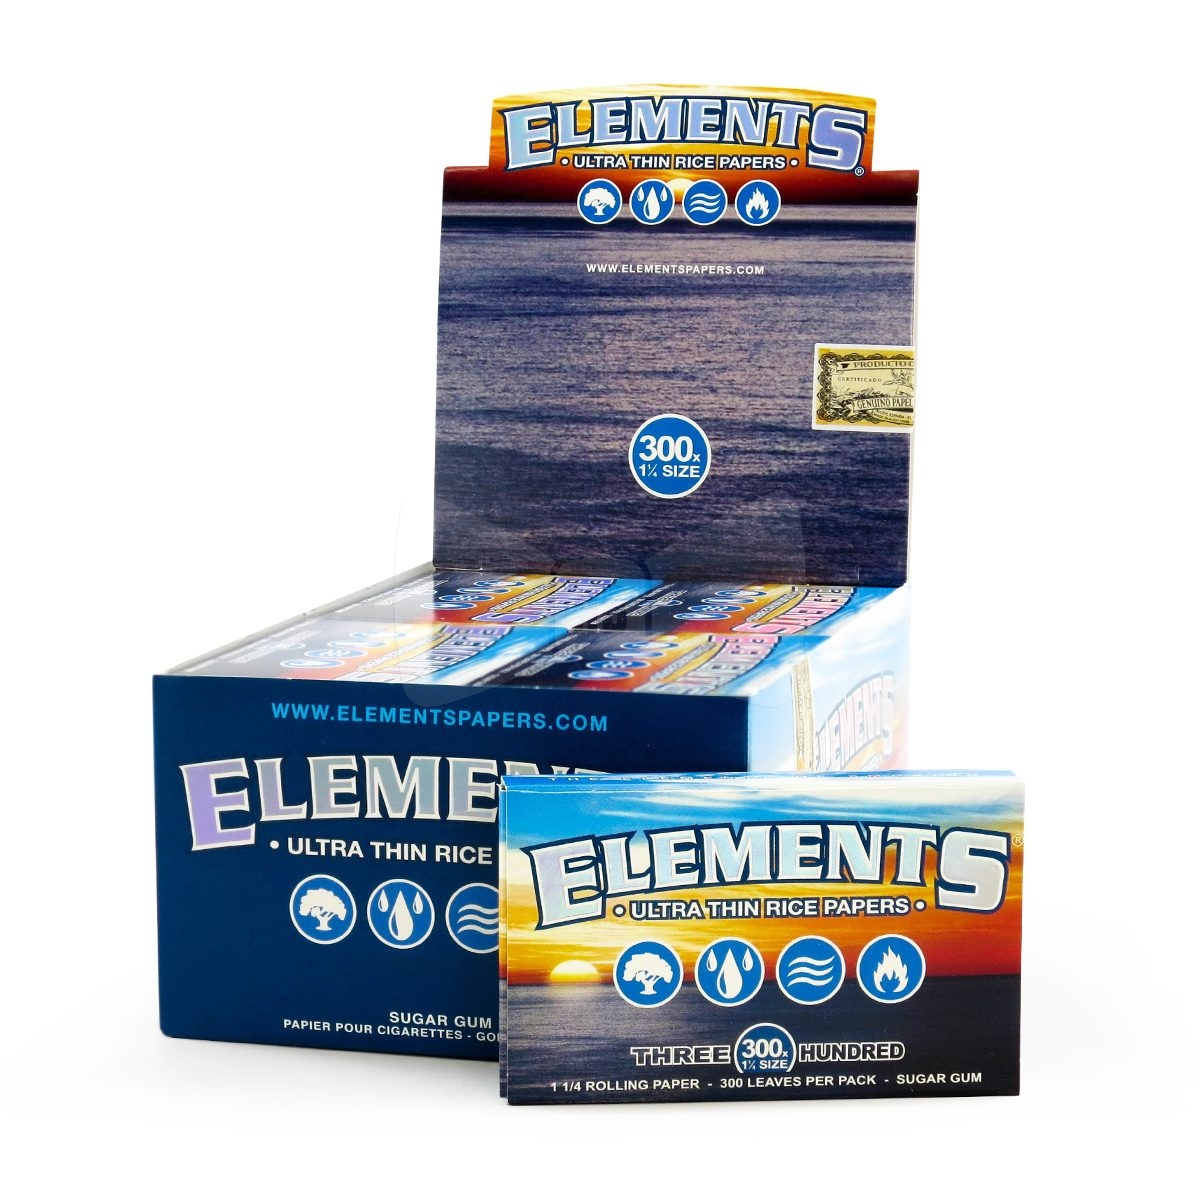 Elements 300 Rolling Papers 1 Pack